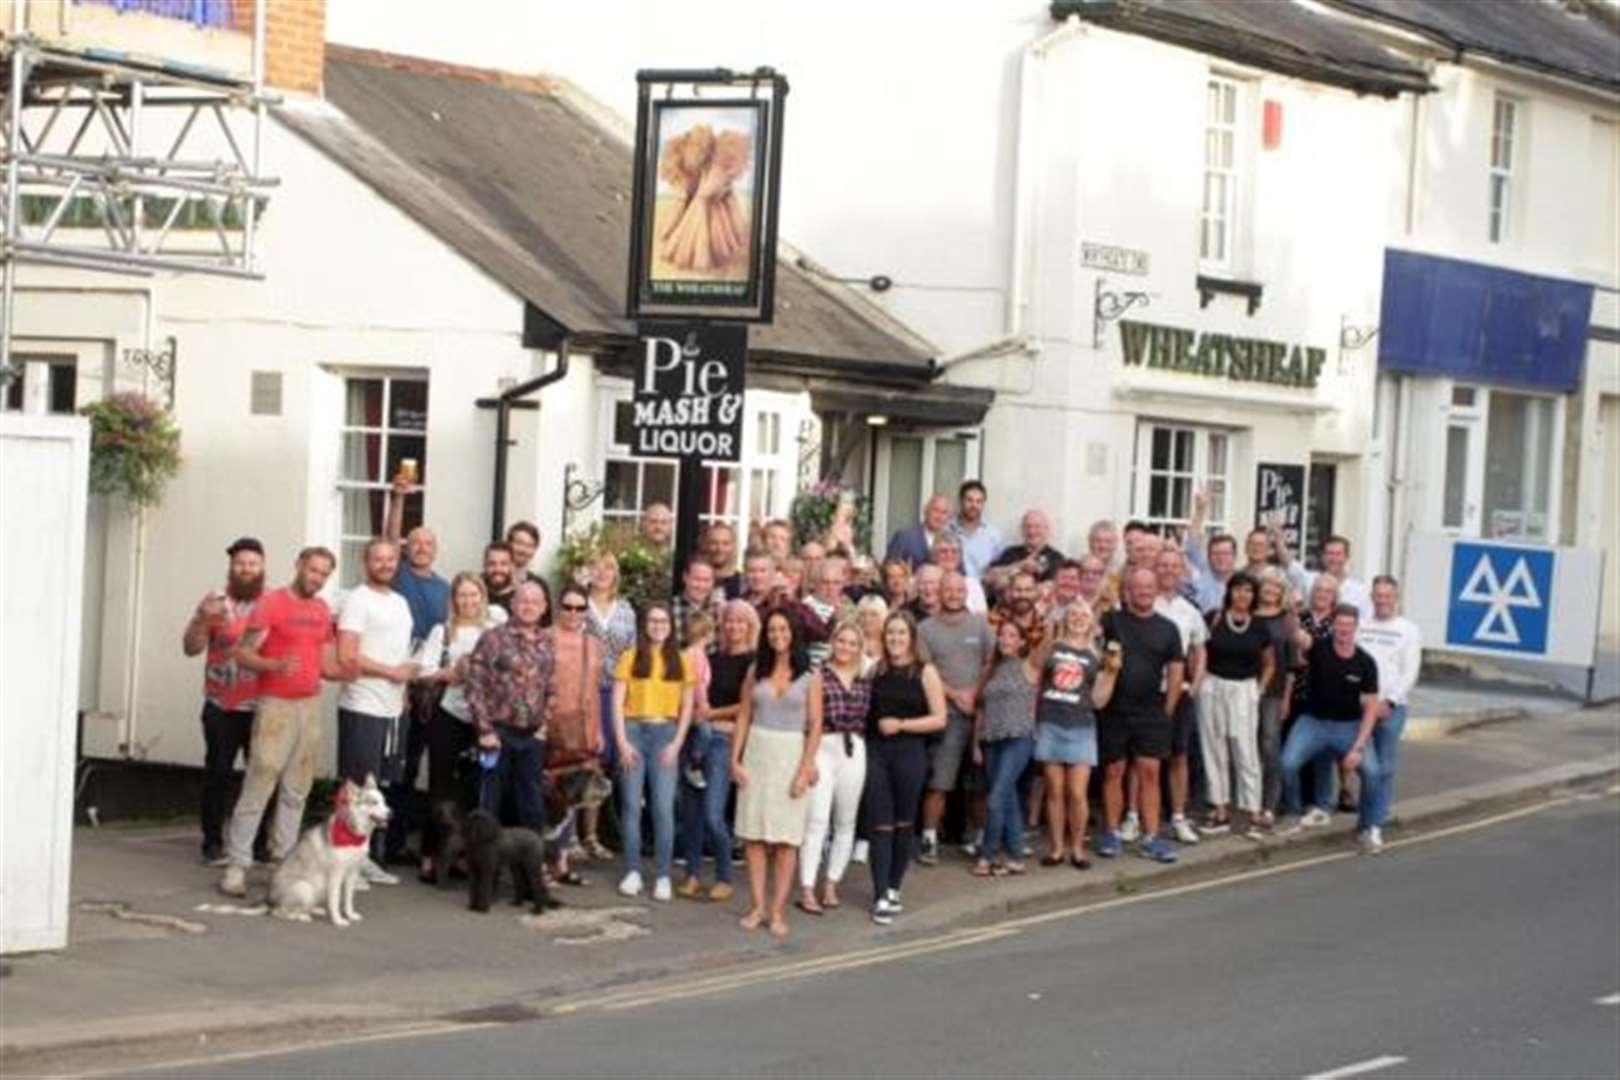 Regulars and staff unite to fight noise complaint threat to future of Stortford's Wheatsheaf pub